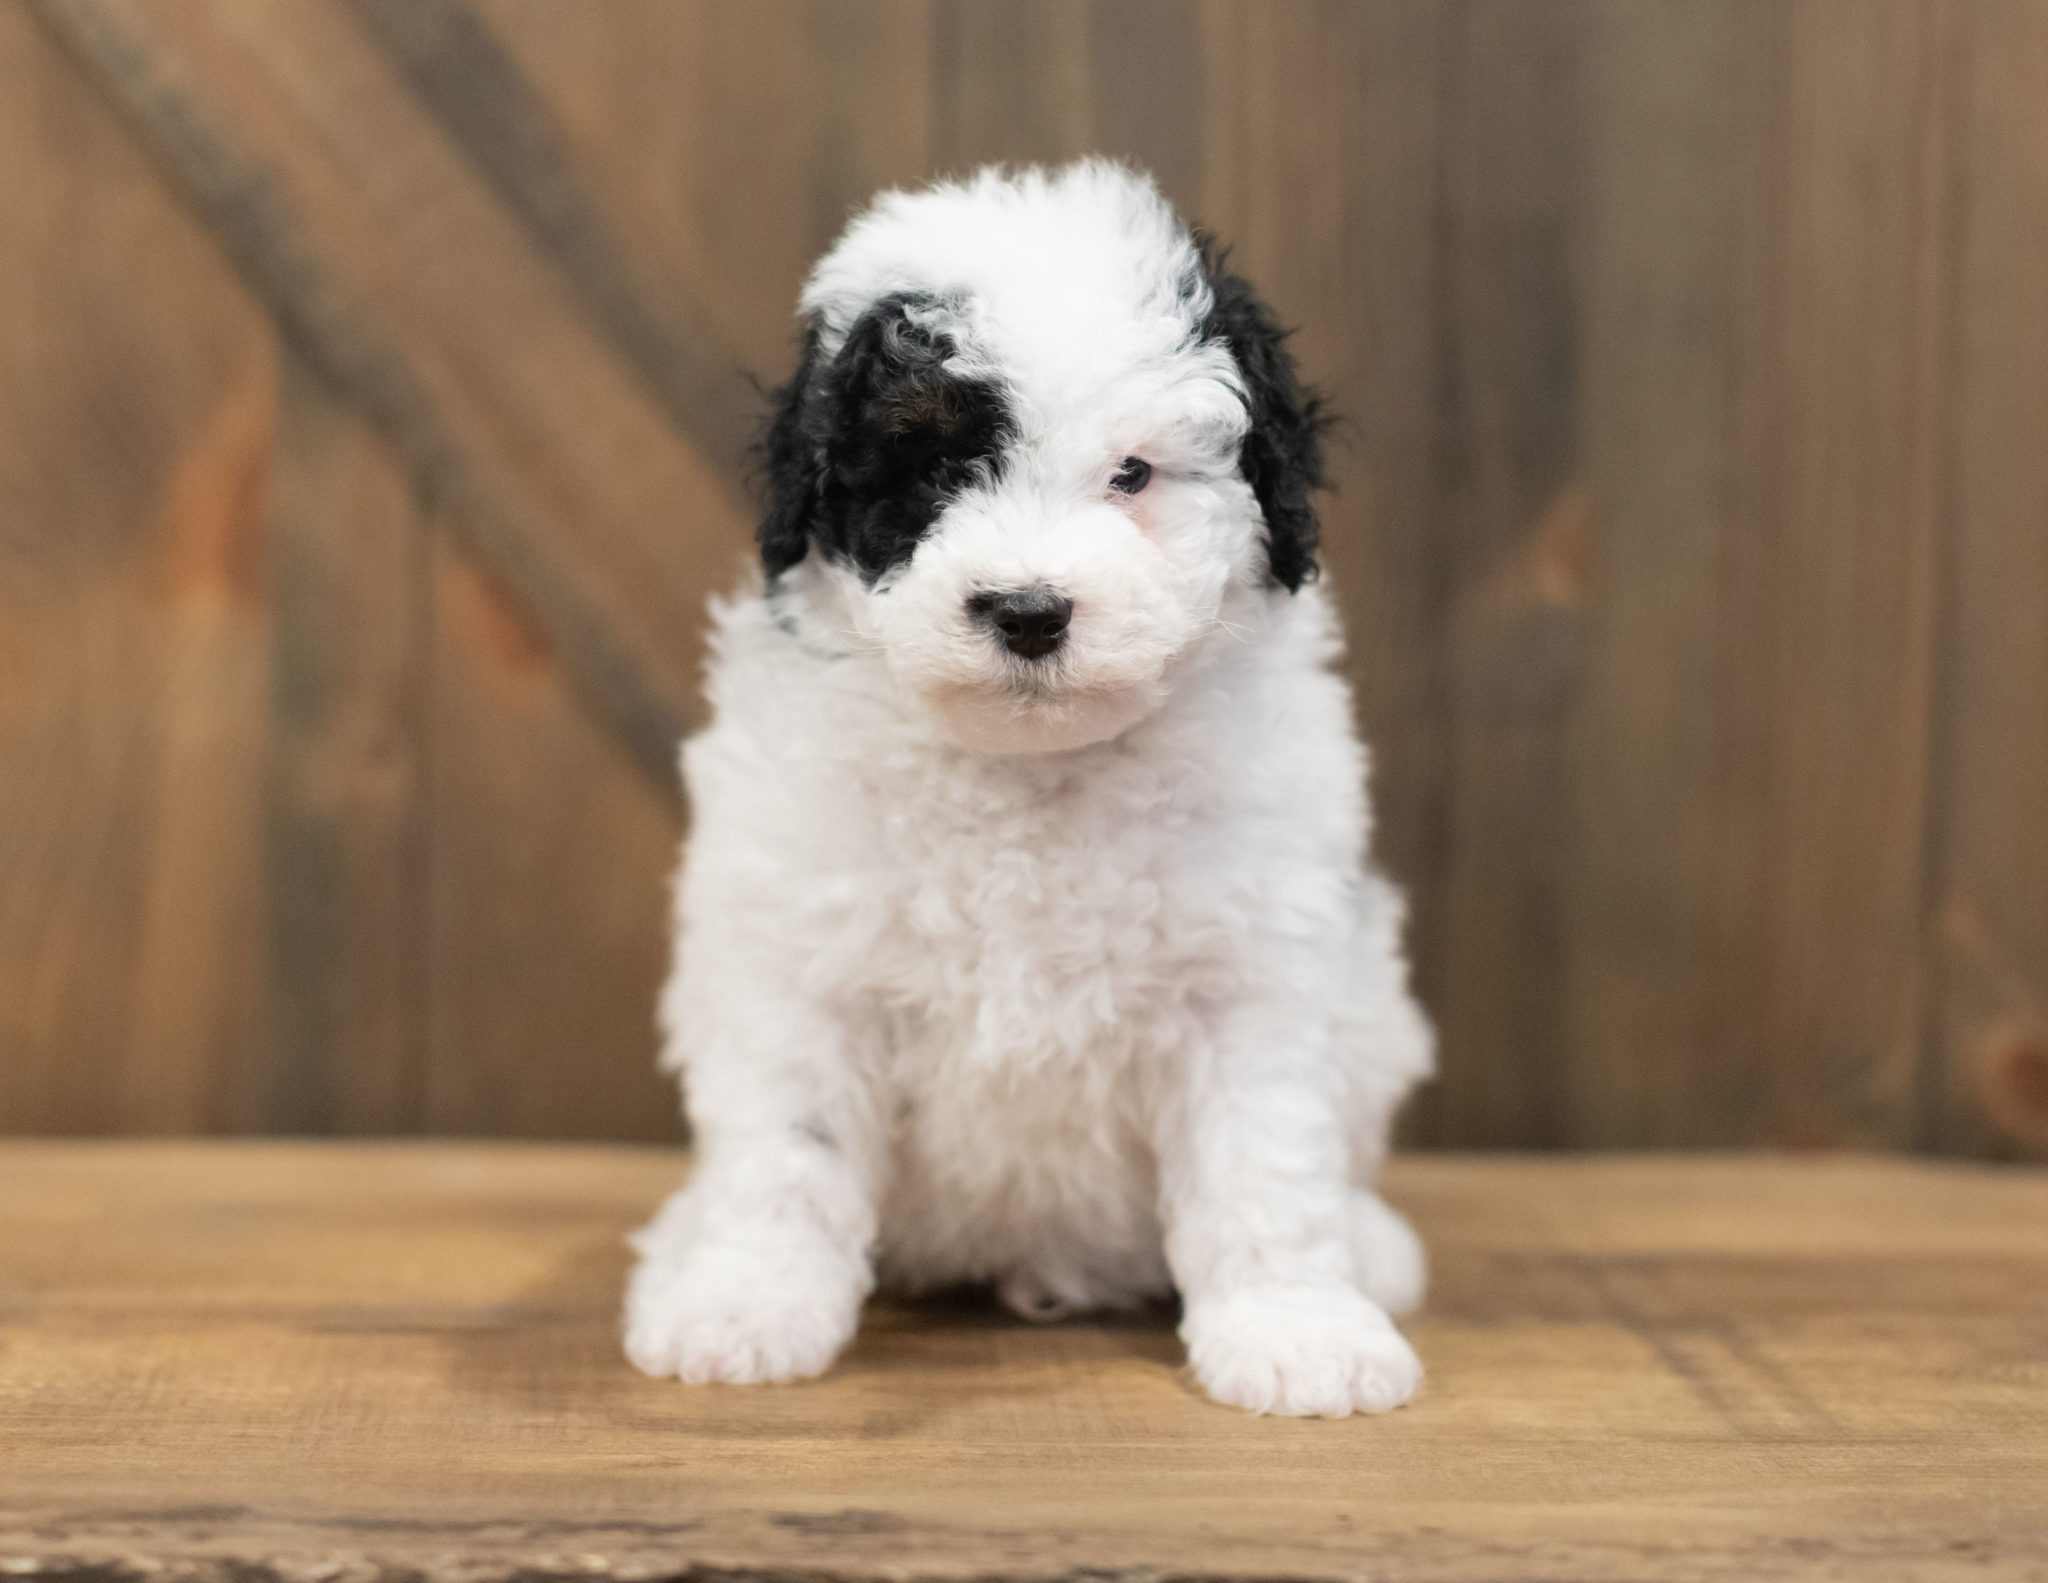 A Poodles 2 Doodles litter of Petite Sheepadoodles raised in Iowa